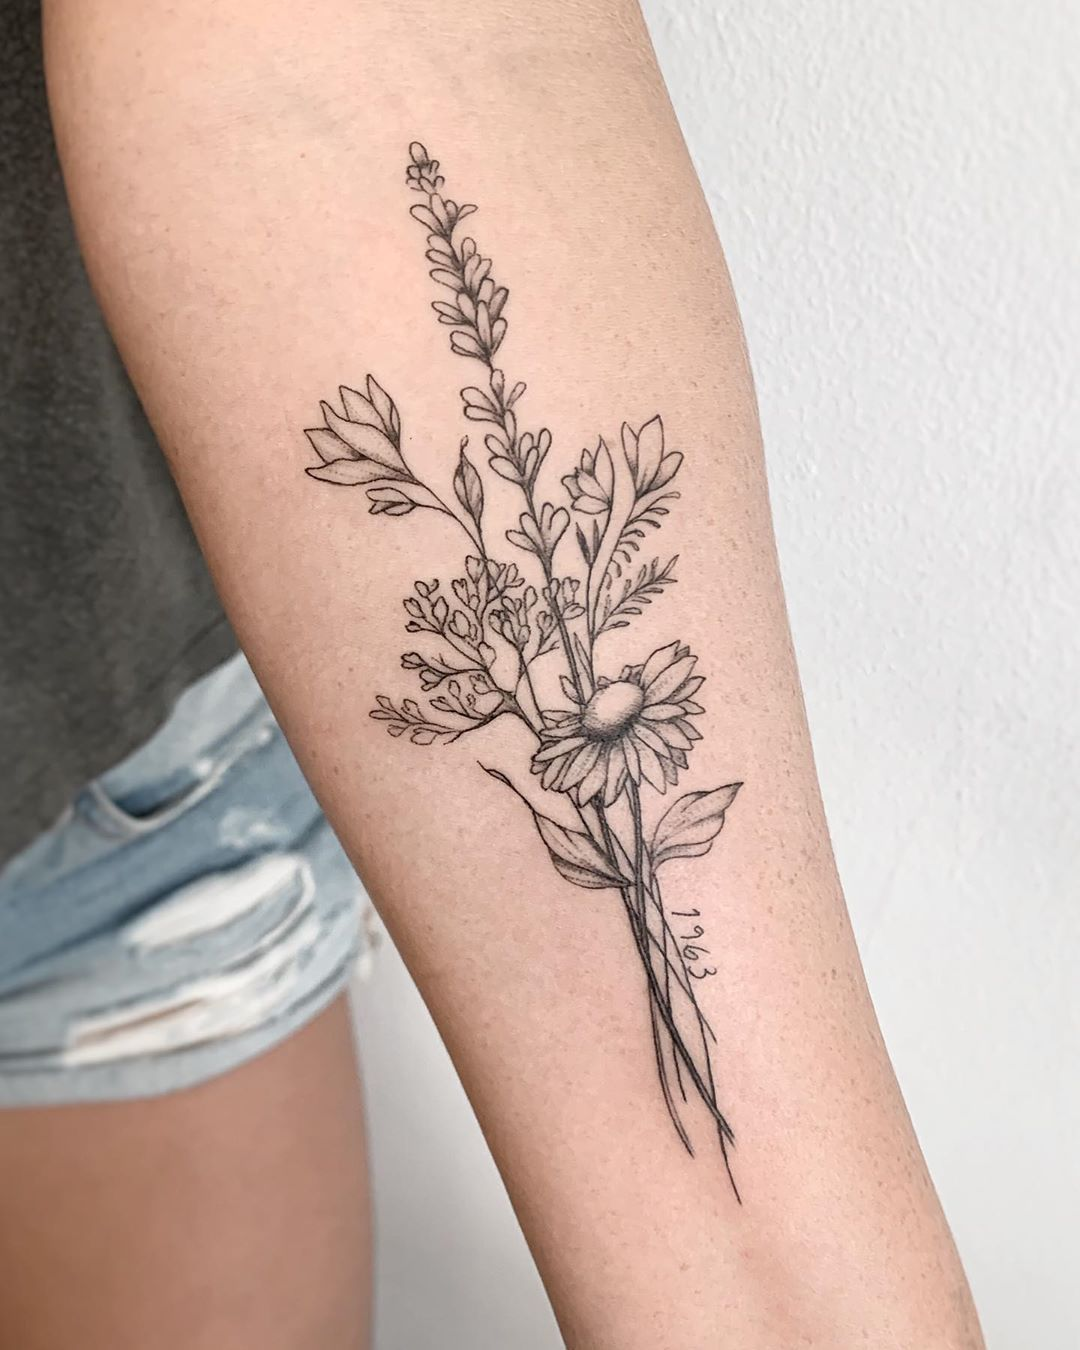 15+ Bouquet tattoo ideas in 2021